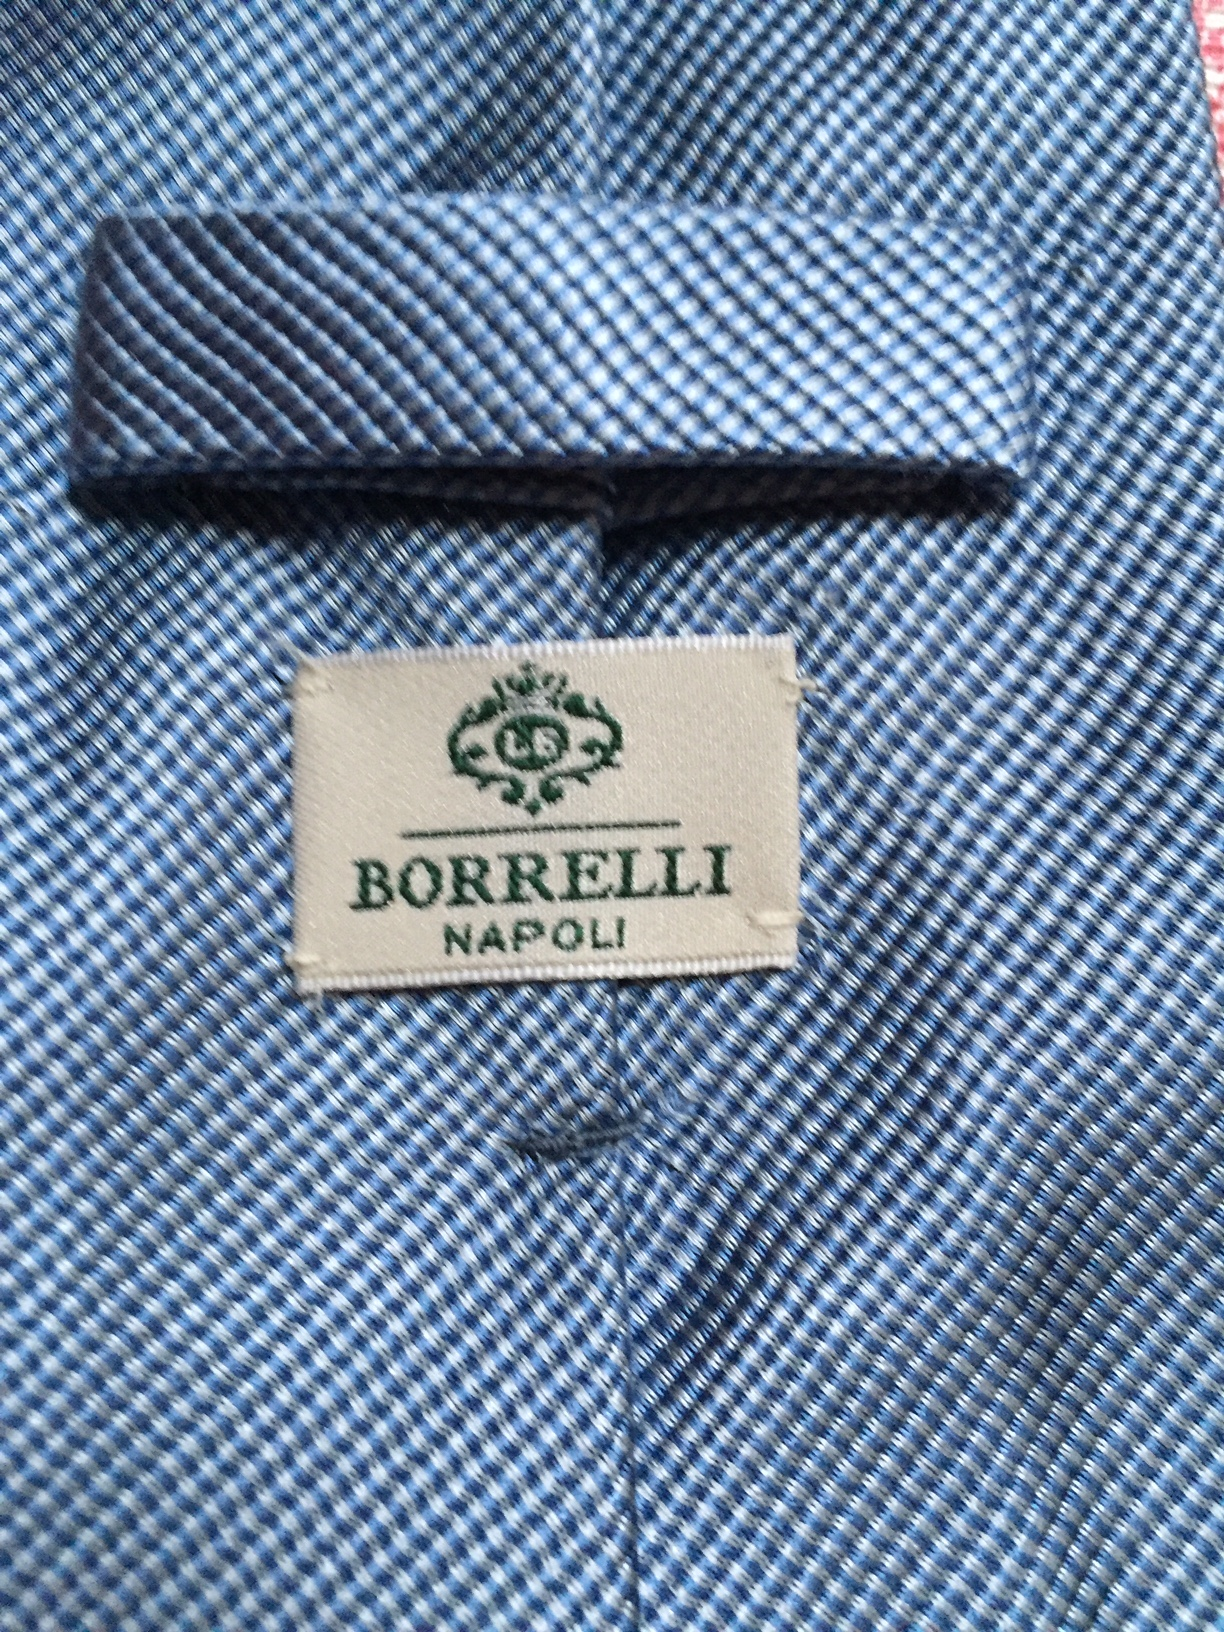 Borrelli Label 2 (New?)